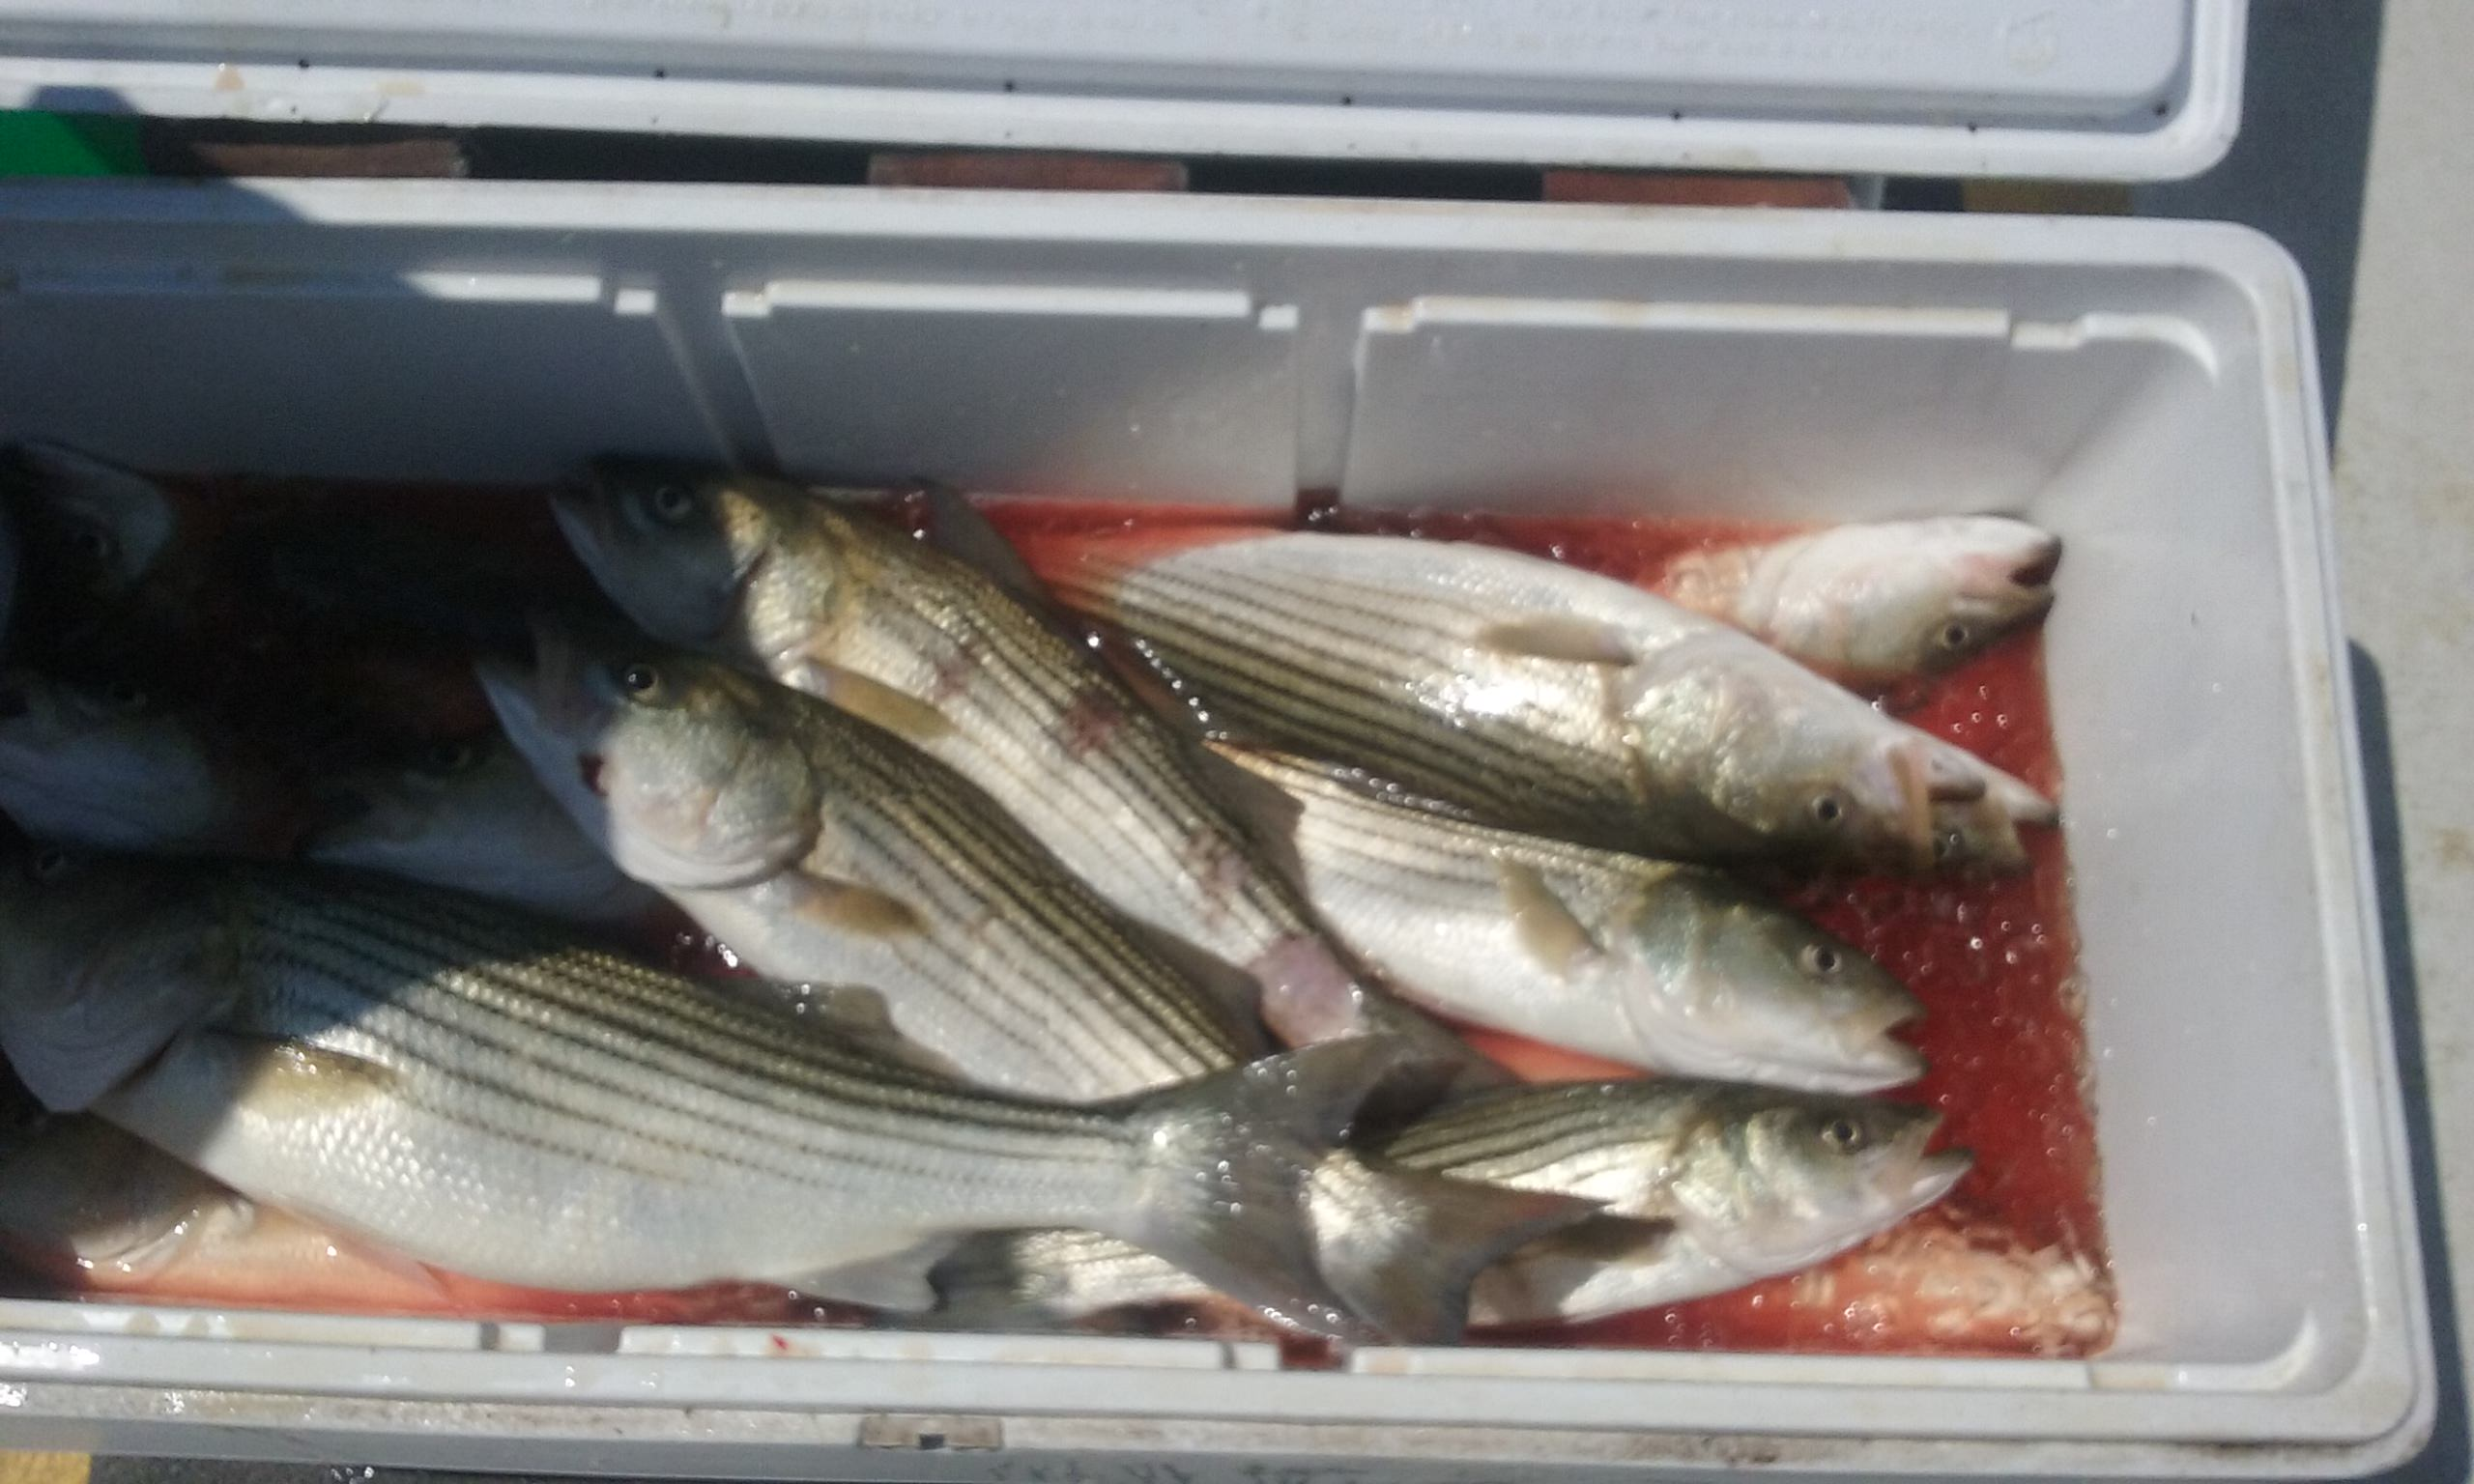 Check out this cooler full of stripers!